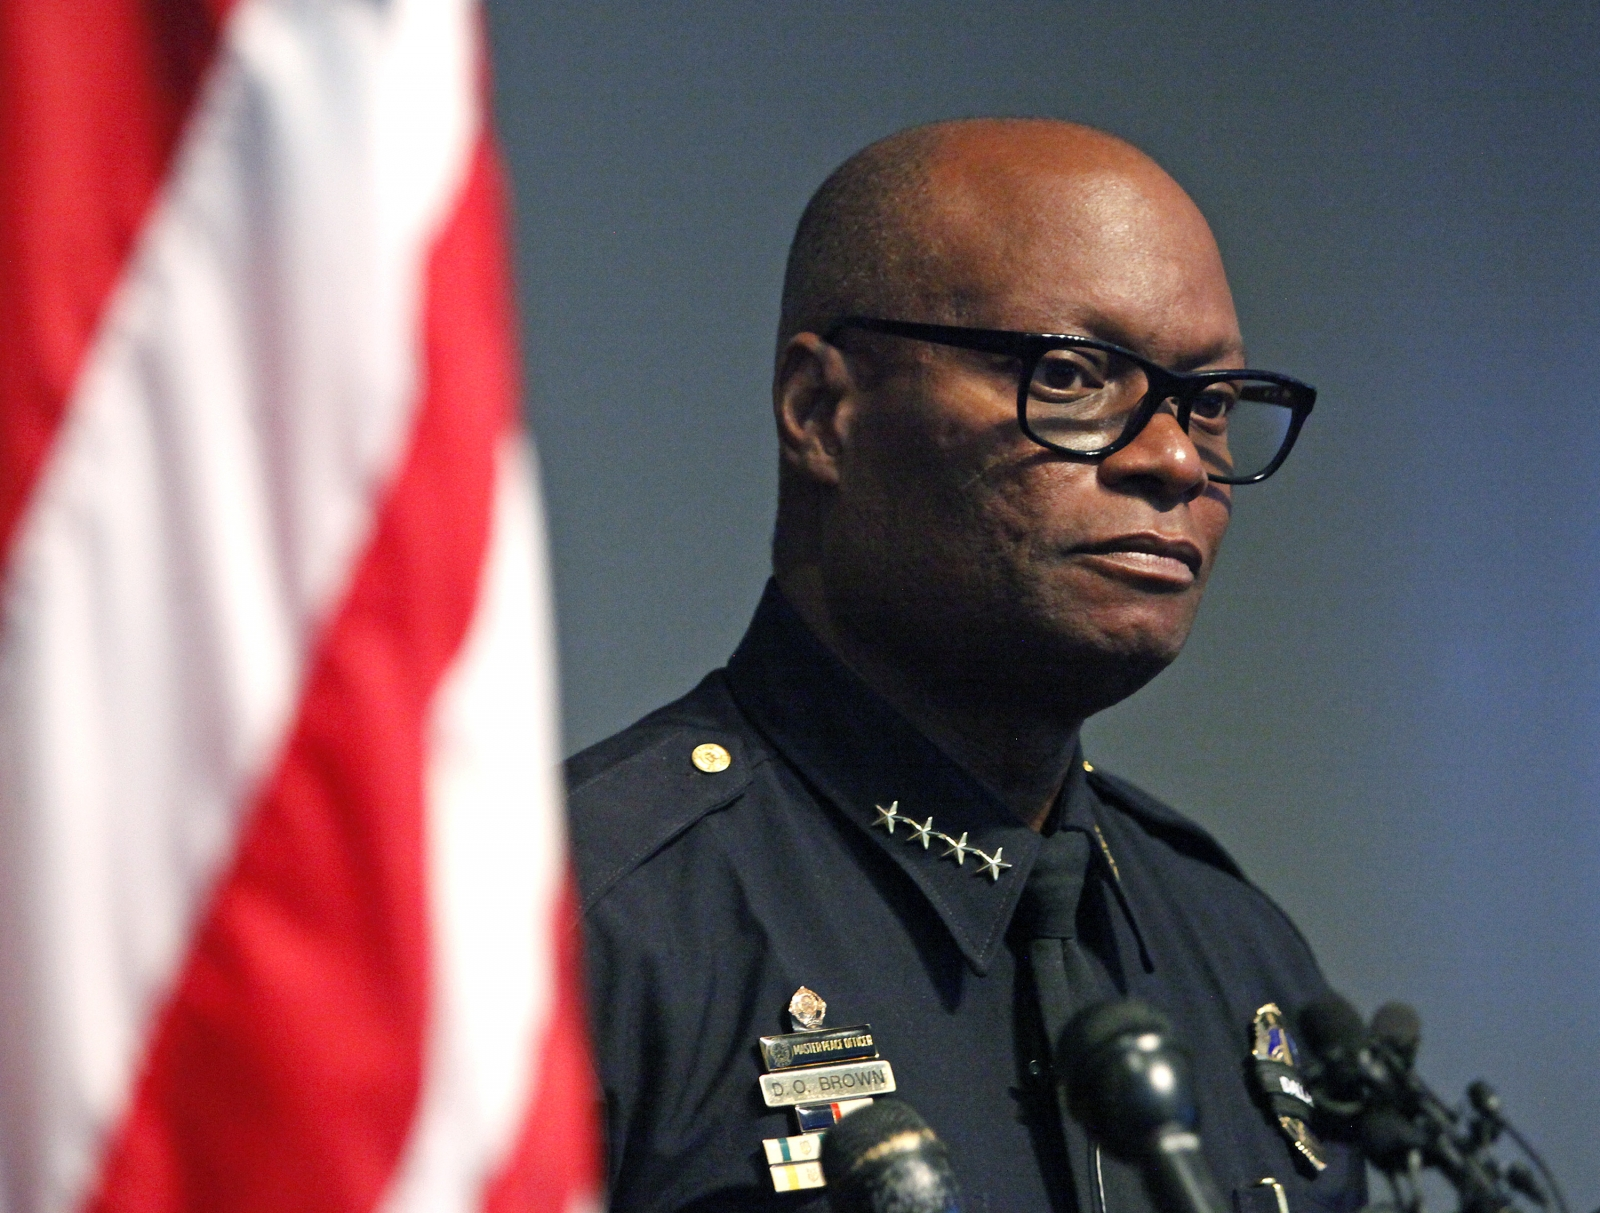 Dallas Police Chief